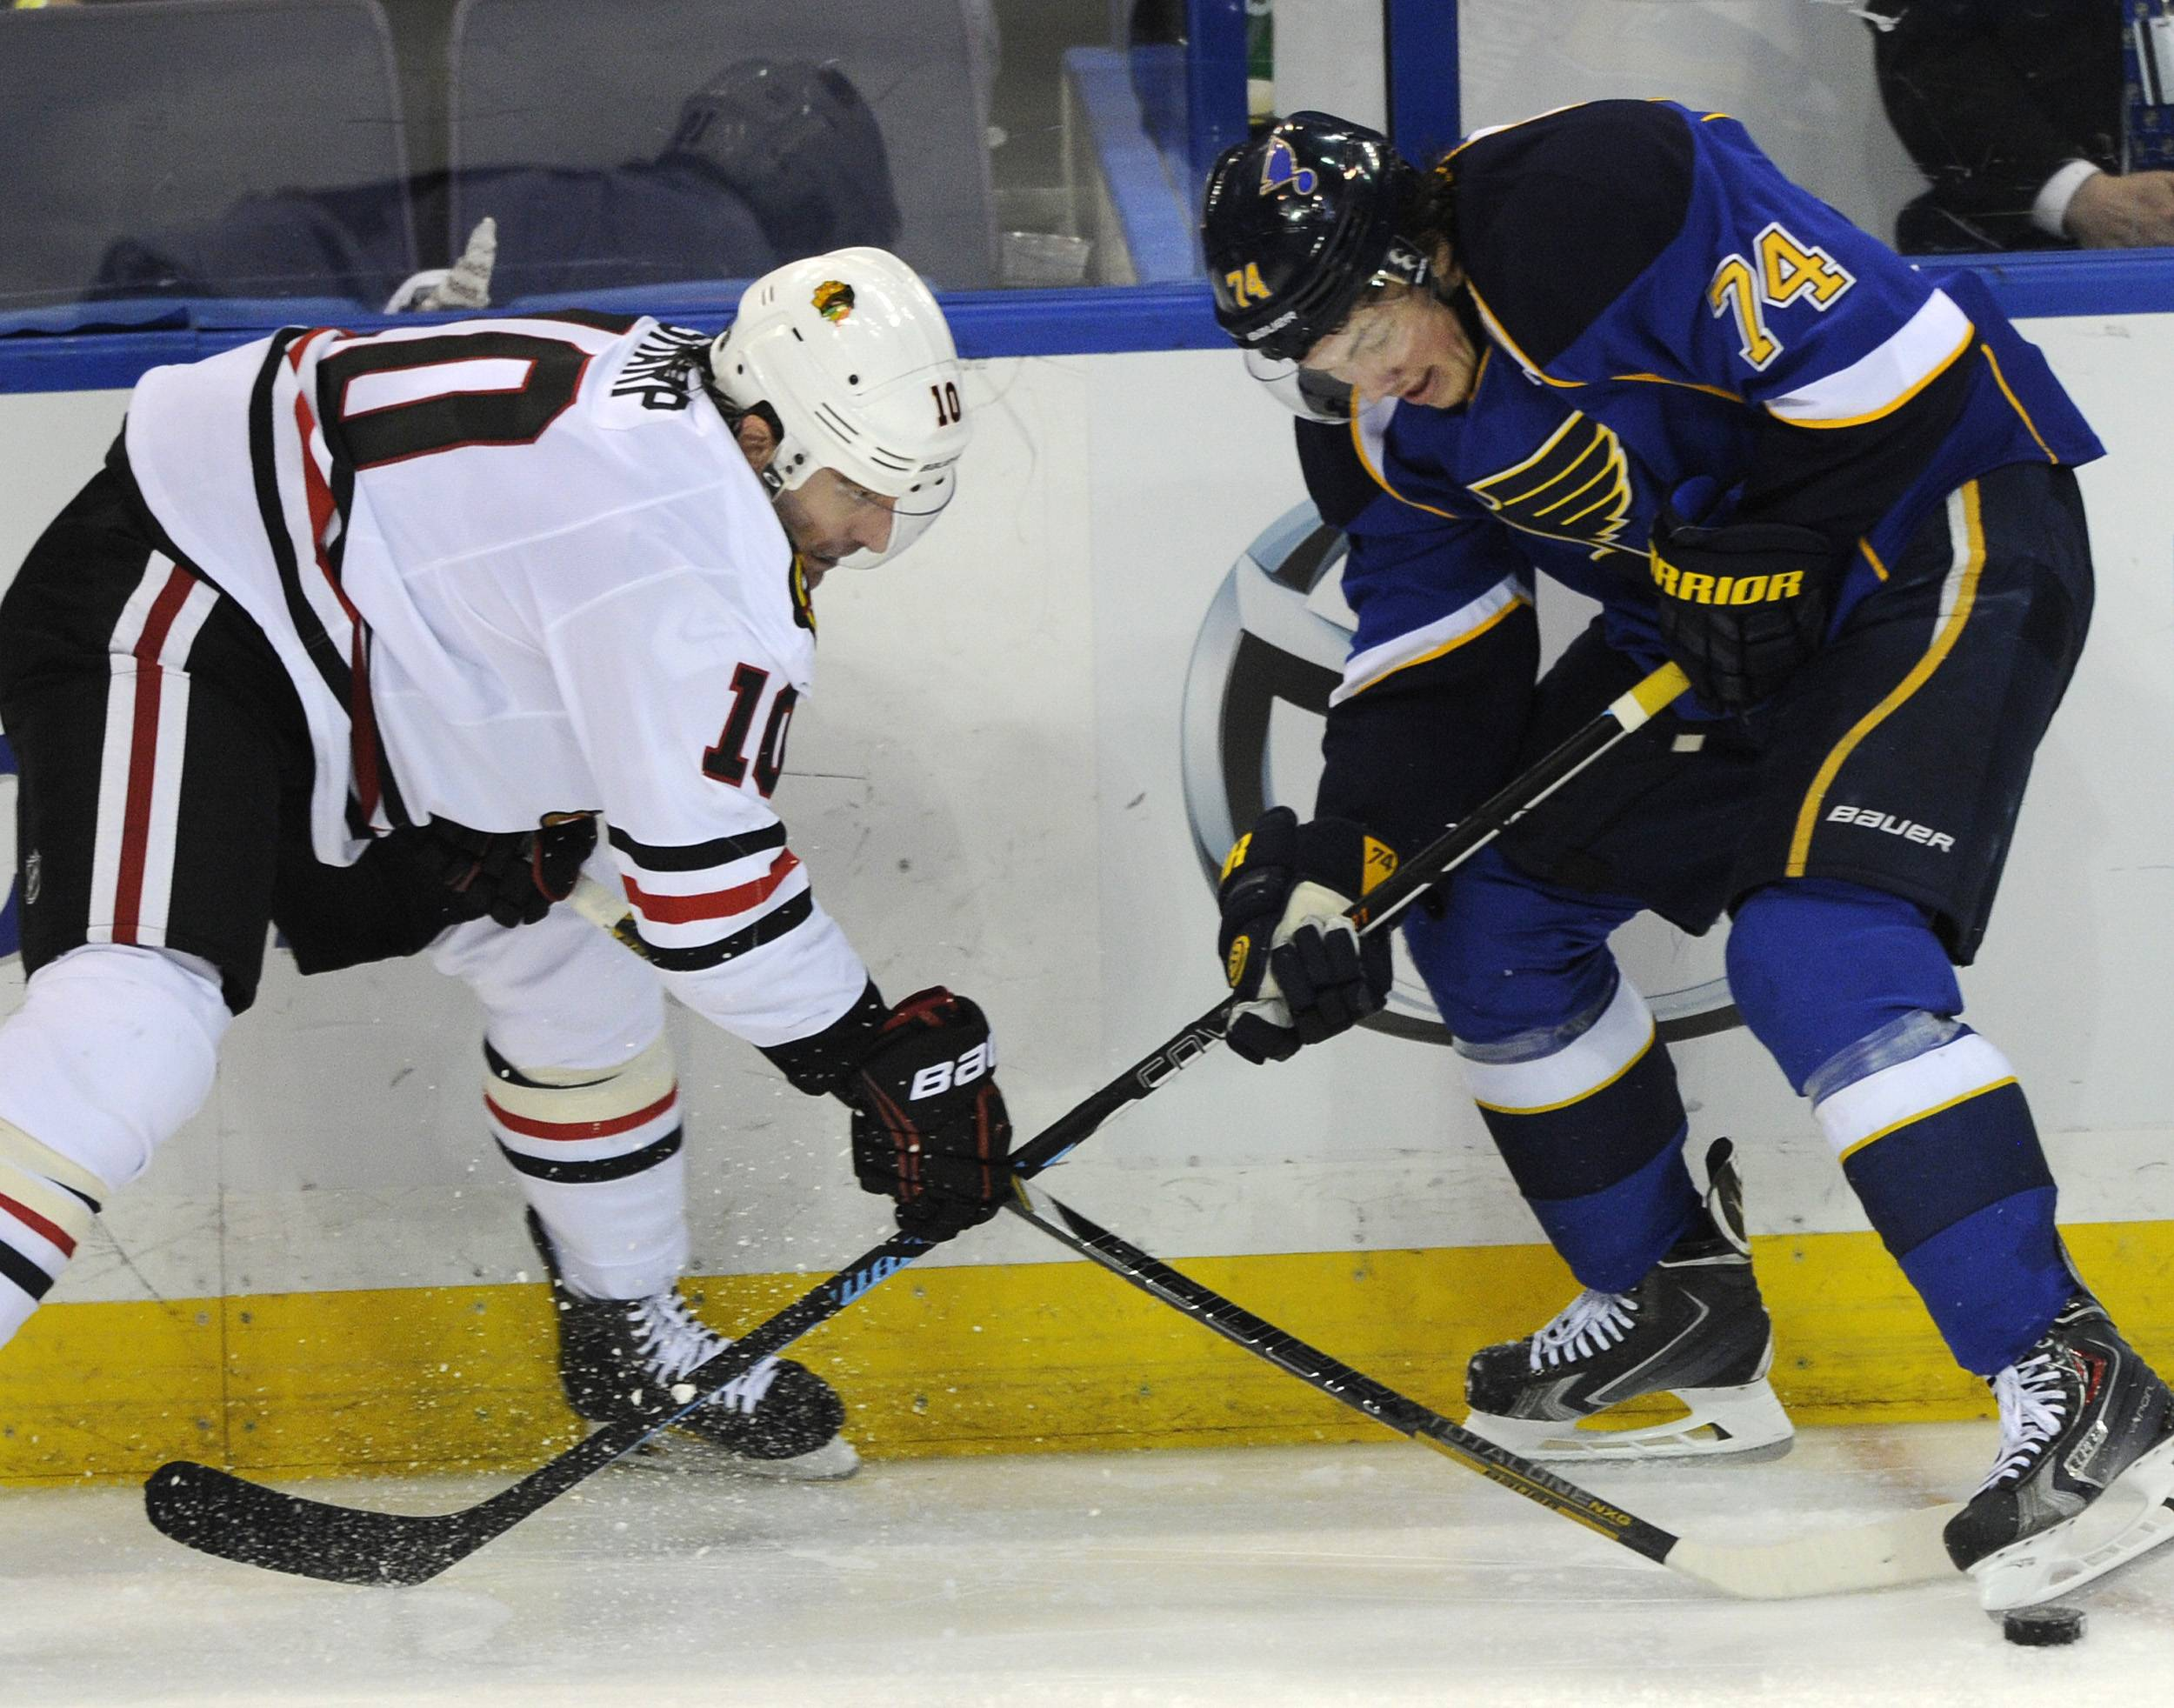 St. Louis Blues' T.J. Oshie (74) and Chicago Blackhawks' Patrick Sharp (10) reach for the puck during the second period in Game 2 of a first-round NHL hockey playoff series on Saturday, April 19, 2014, in St. Louis.